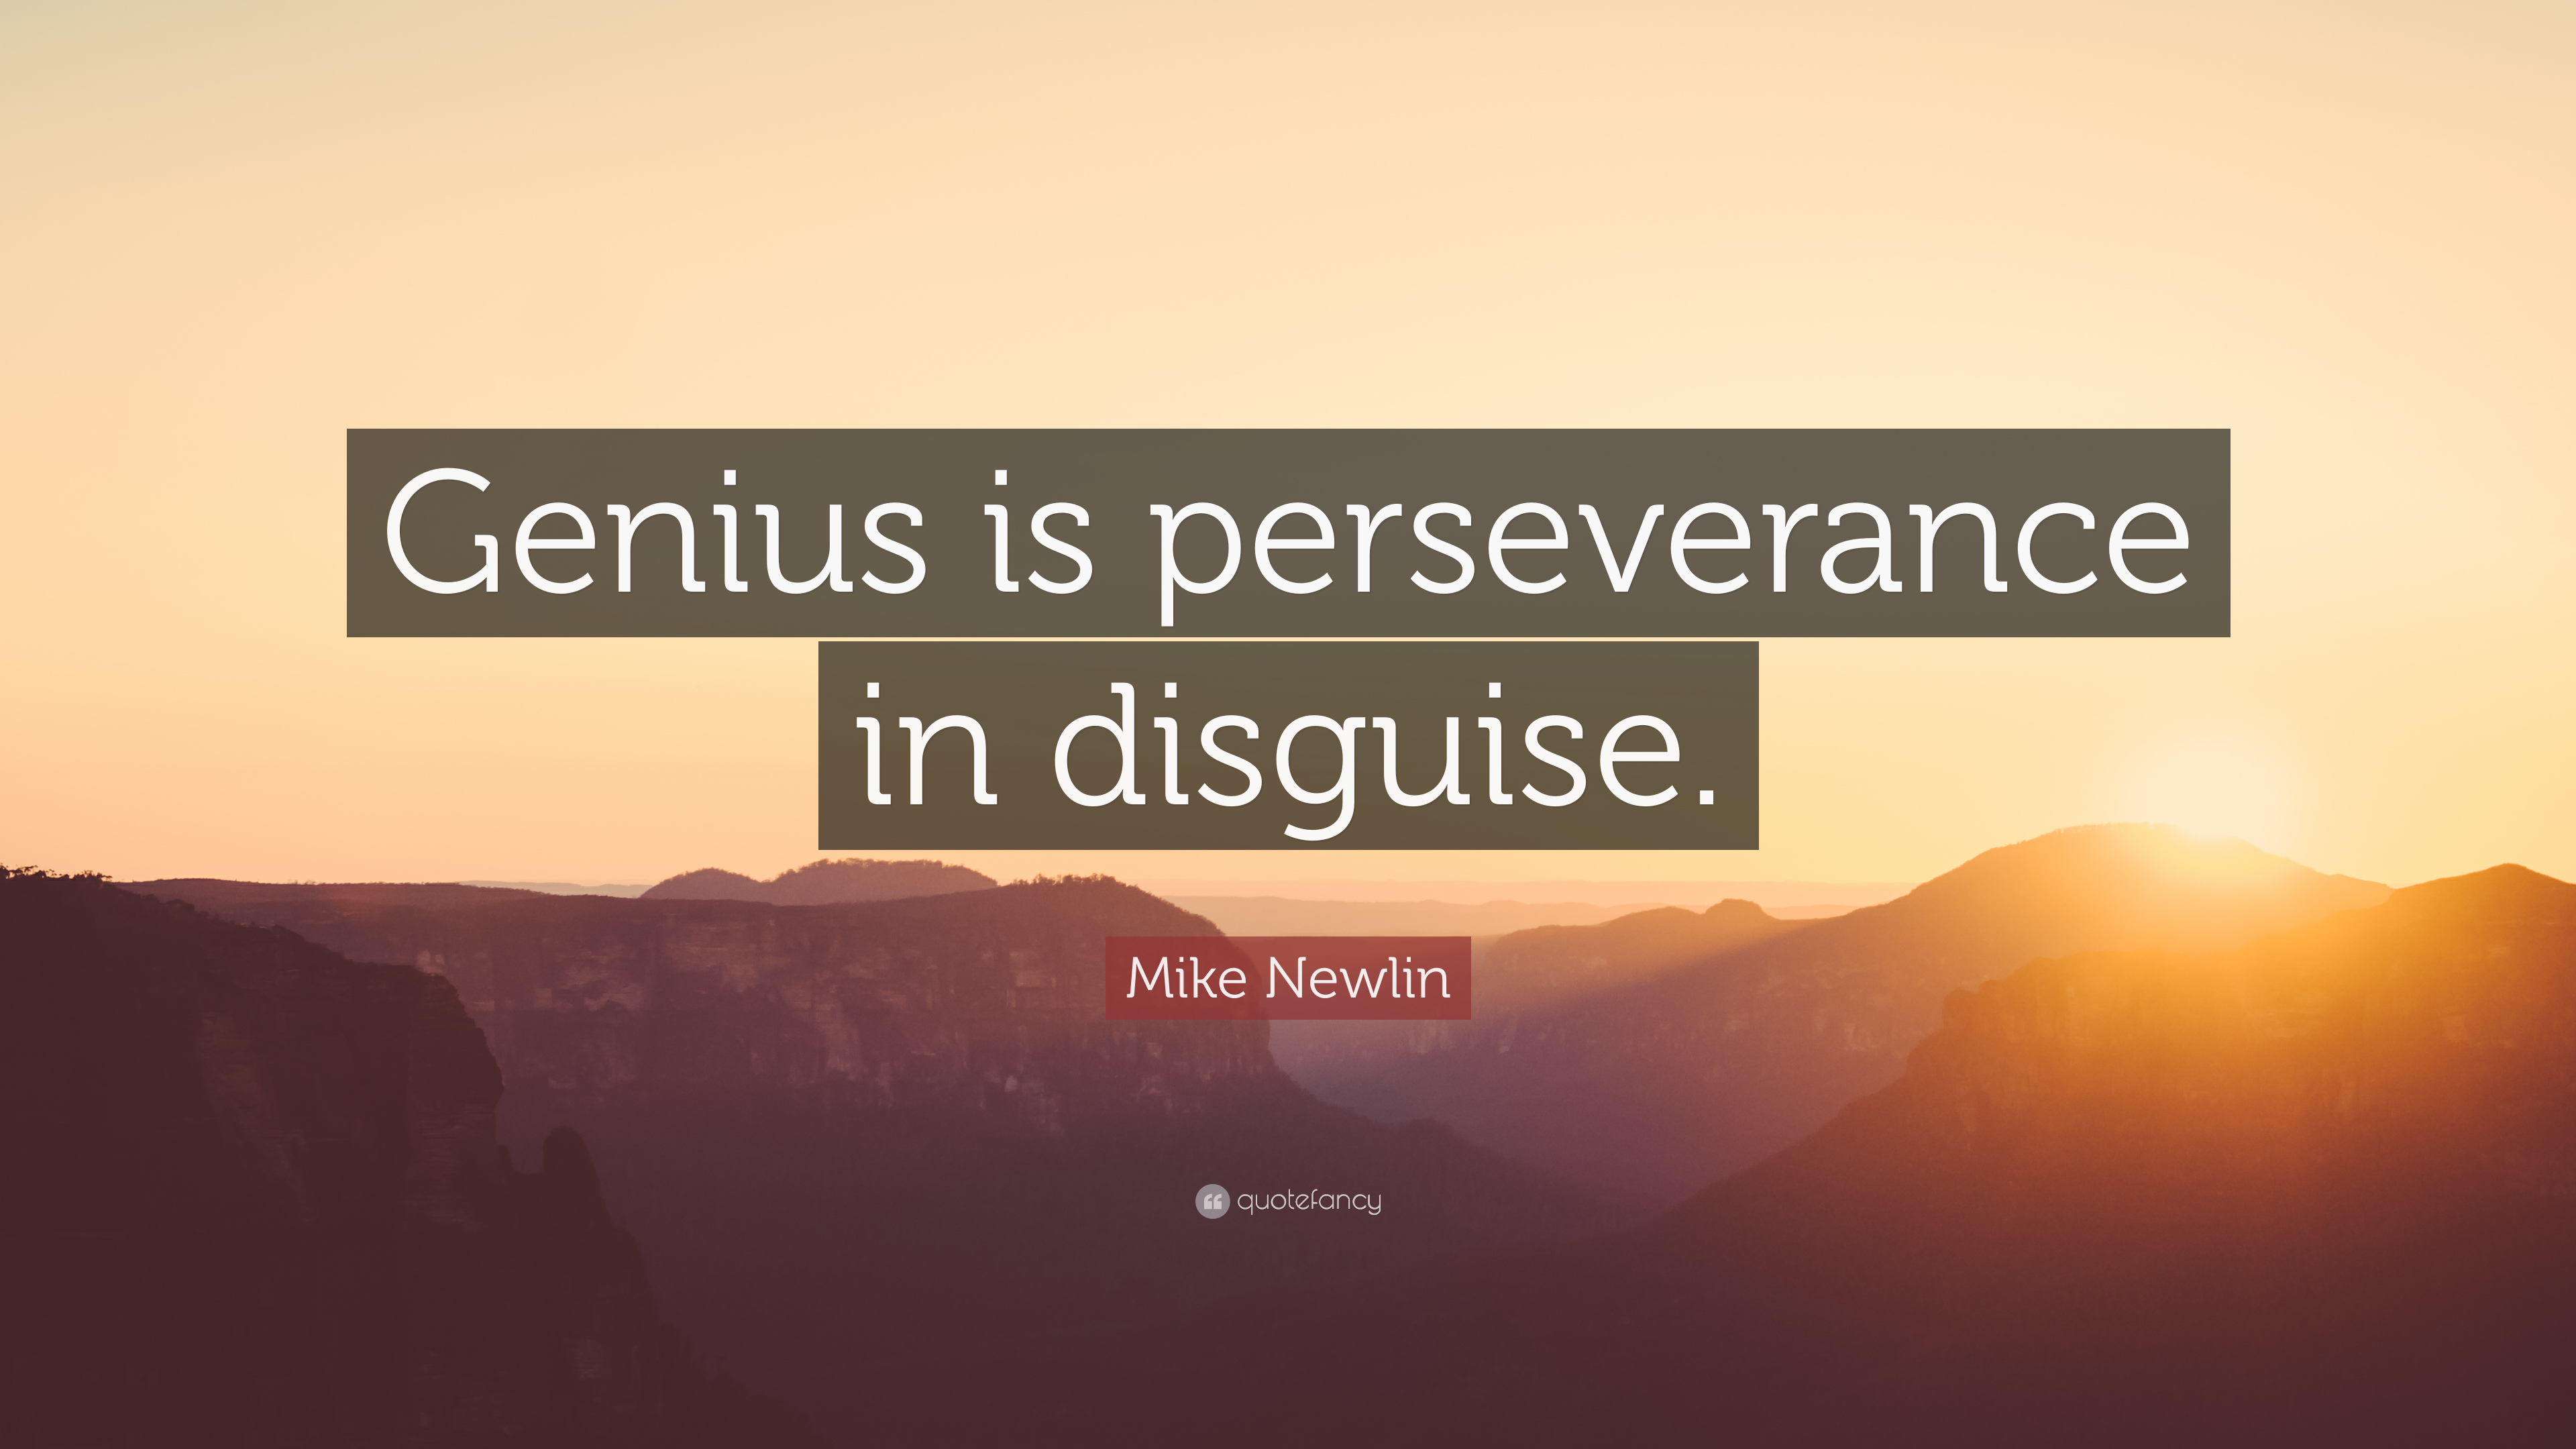 """Mike Newlin Quote """"Genius is perseverance in disguise """" 10"""